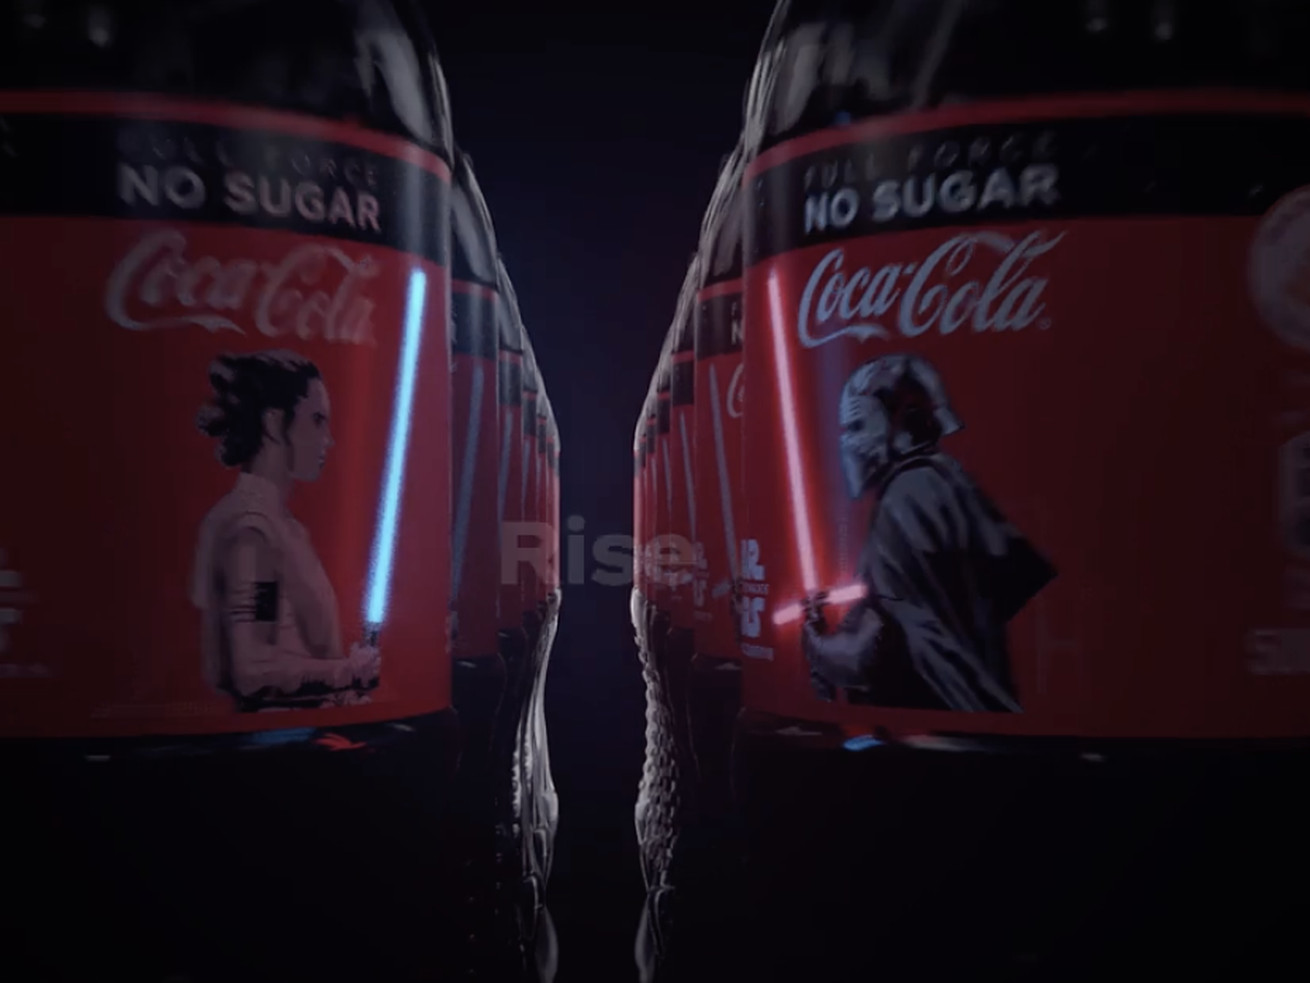 These Star Wars-themed Coca-Cola bottles literally light up. But there's a catch